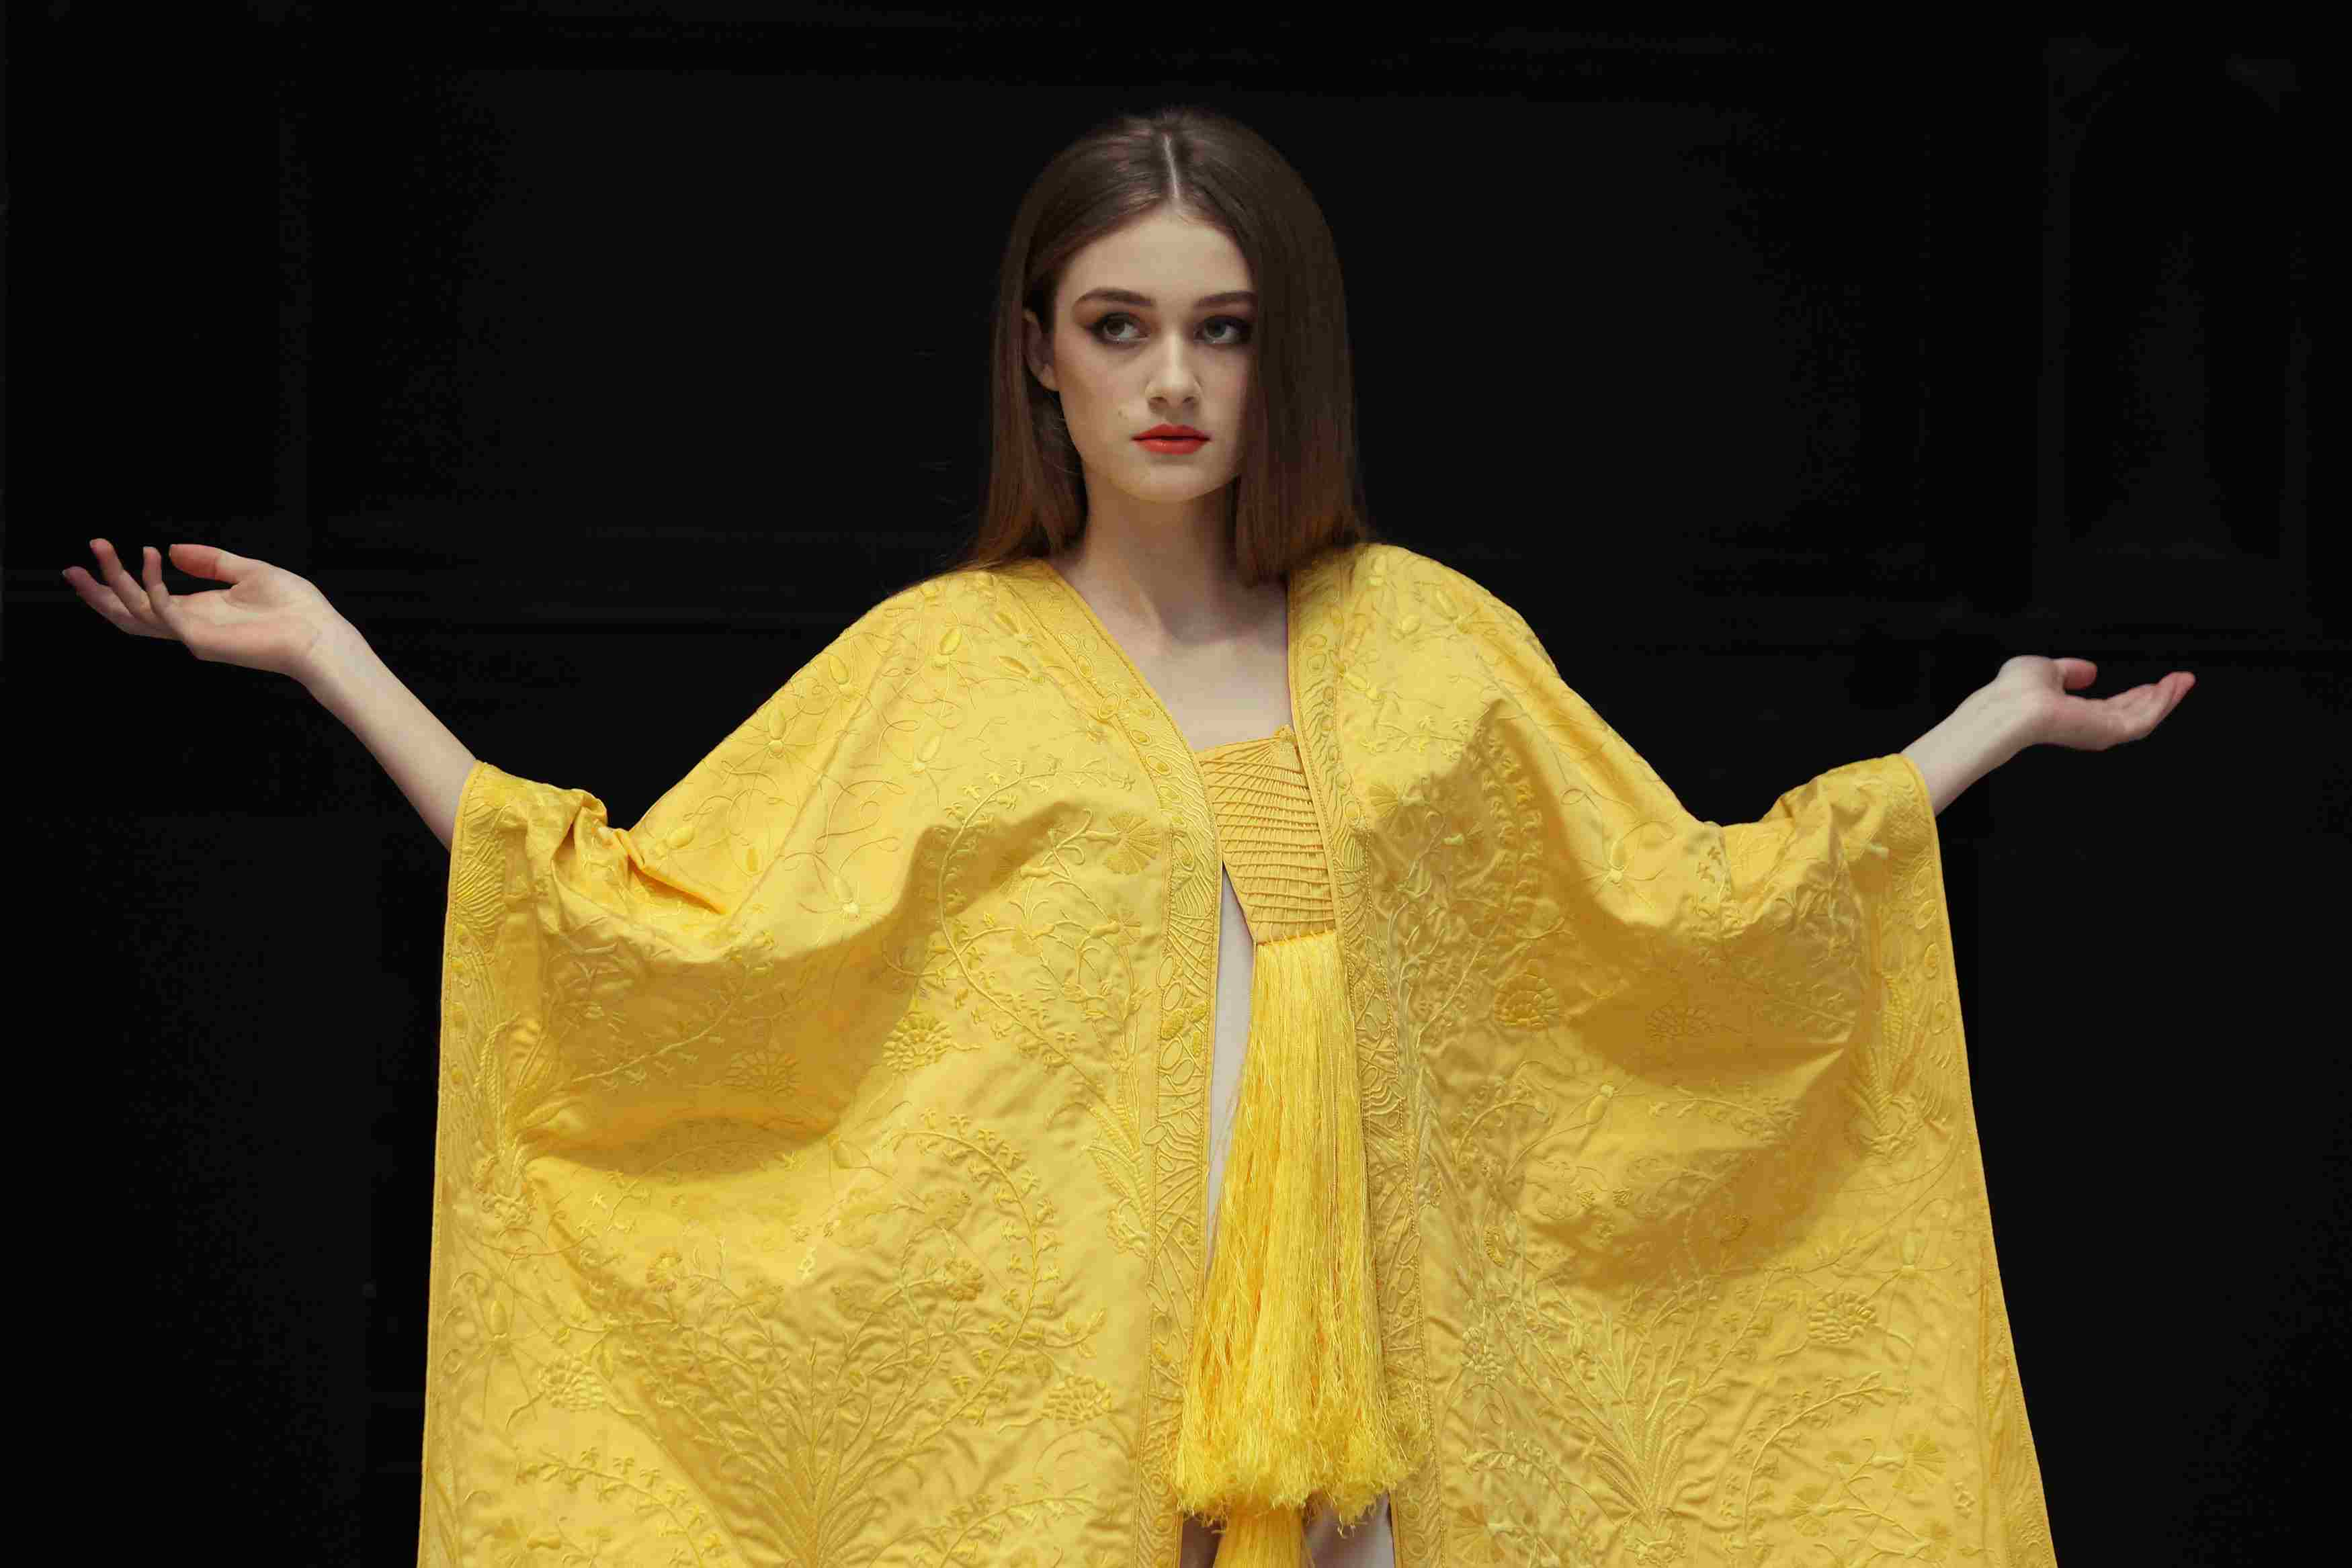 A Golden Spider Silk Cape Is Unveiled At The Victoria And Albert Museum